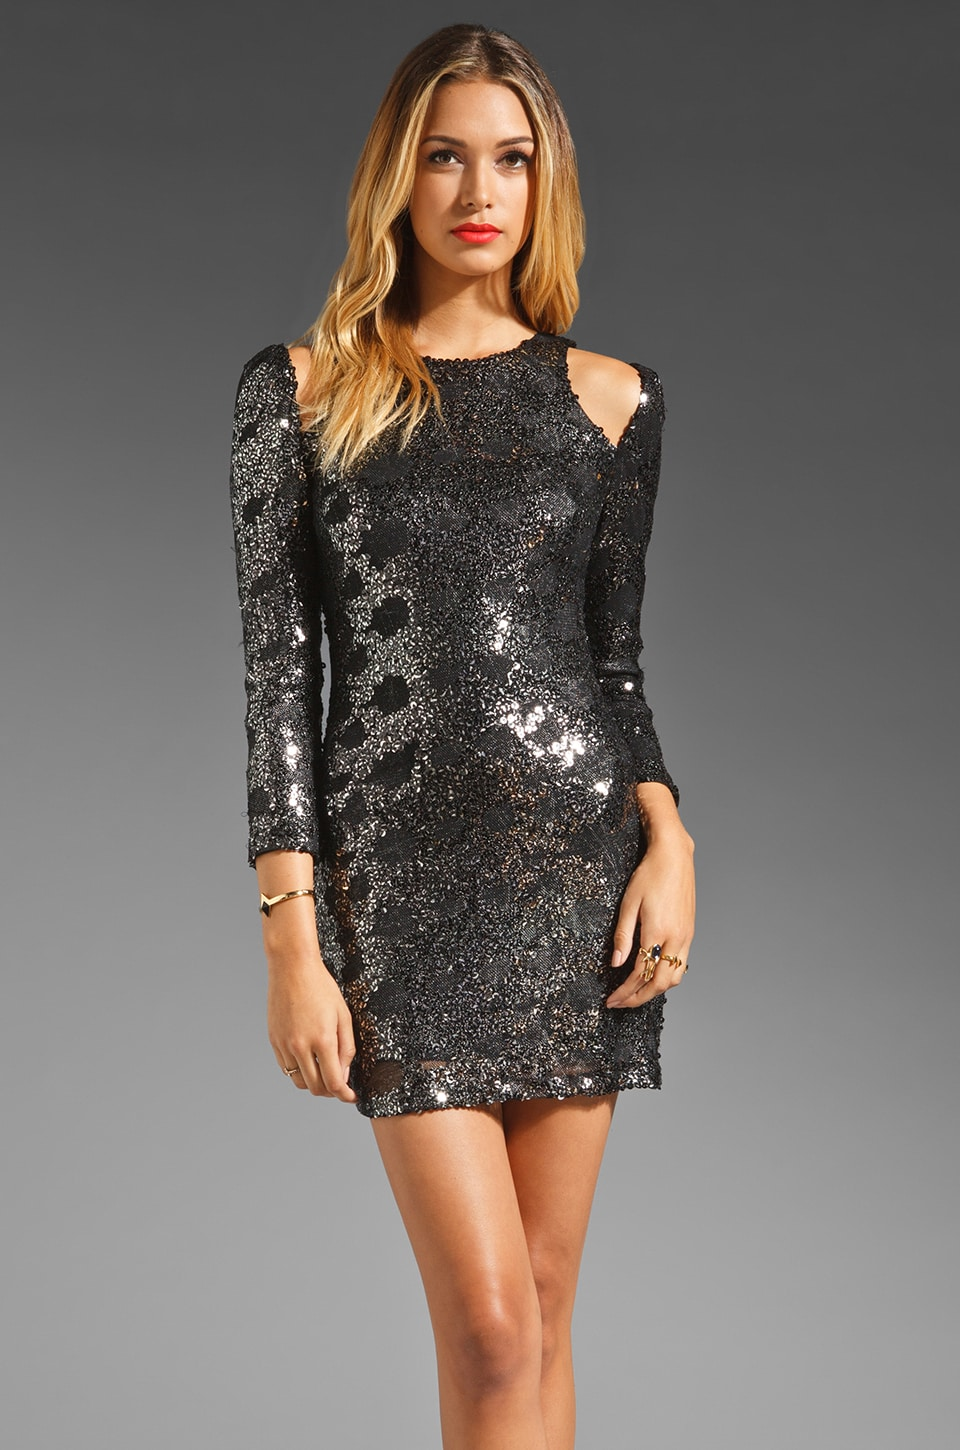 bless'ed are the meek Royal Shineness Dress in Black